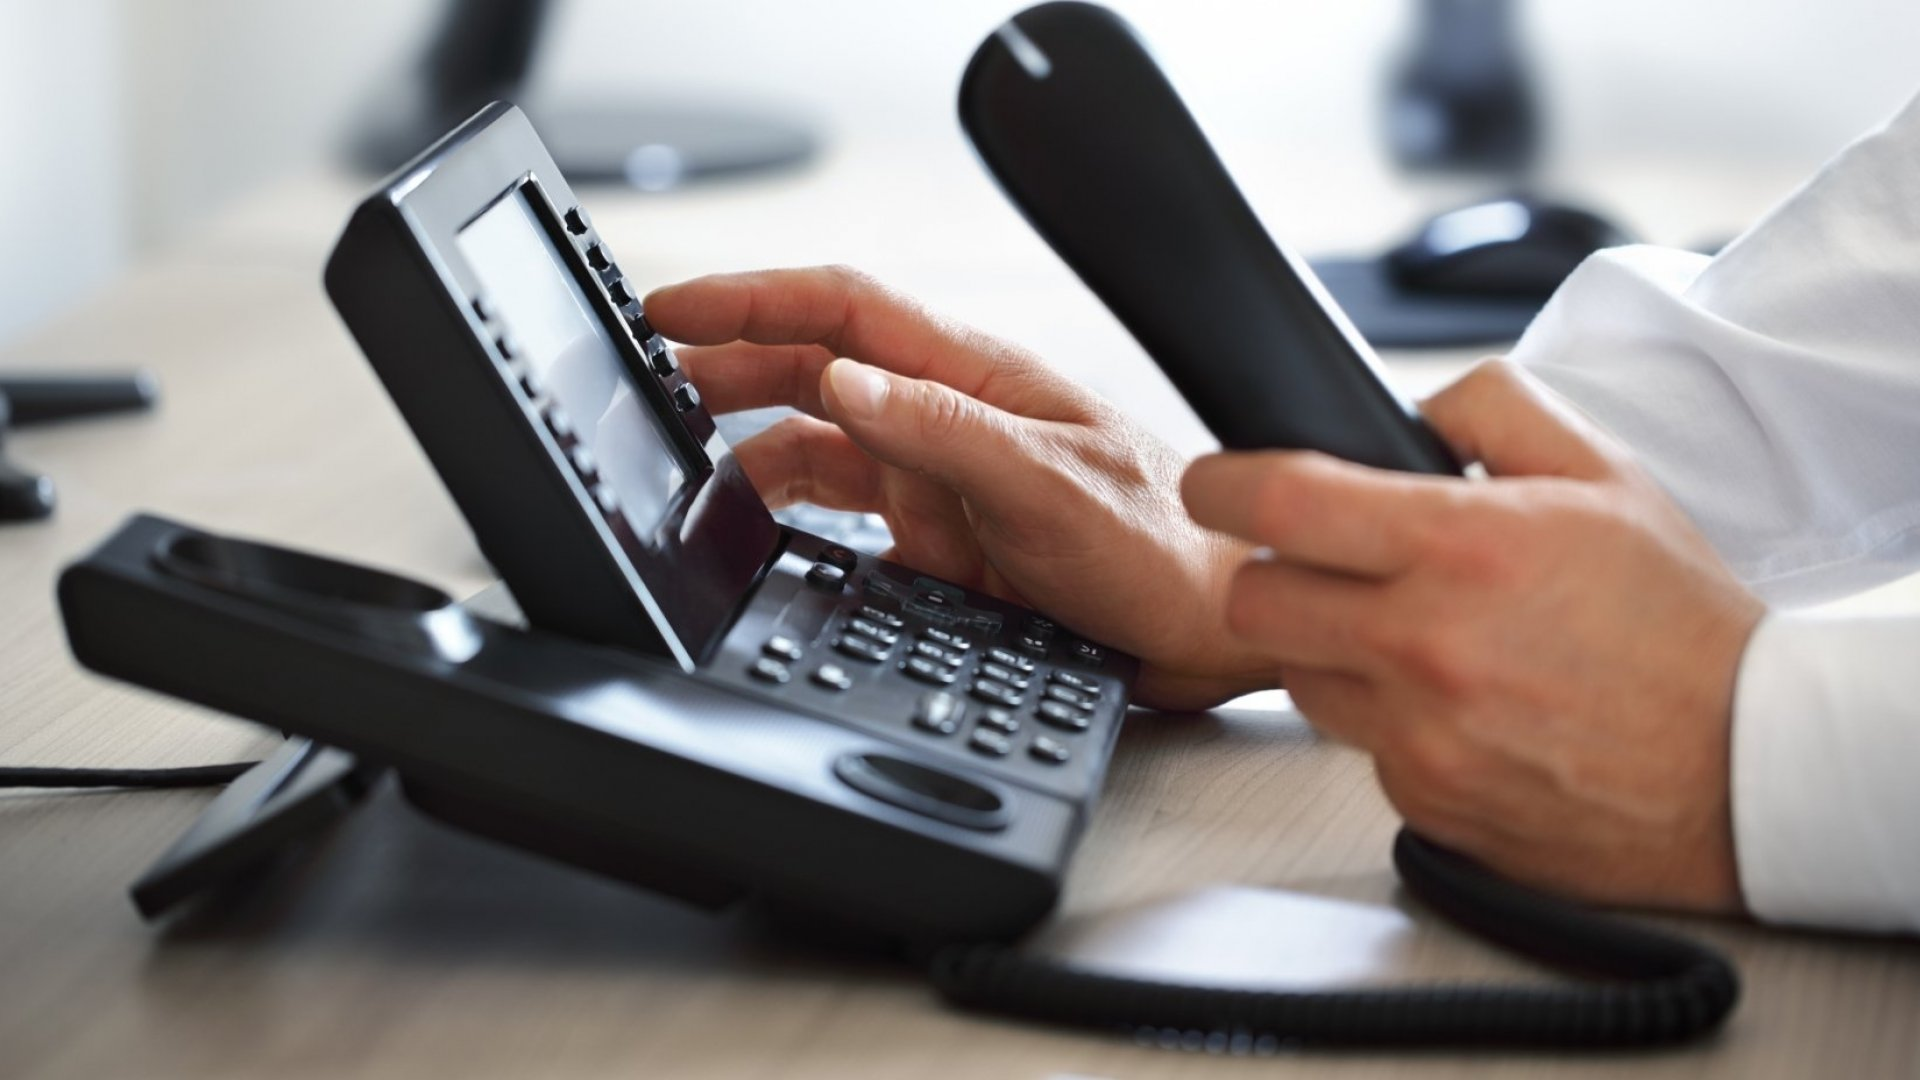 Is It OK to Fire an Employee by Phone or Email?